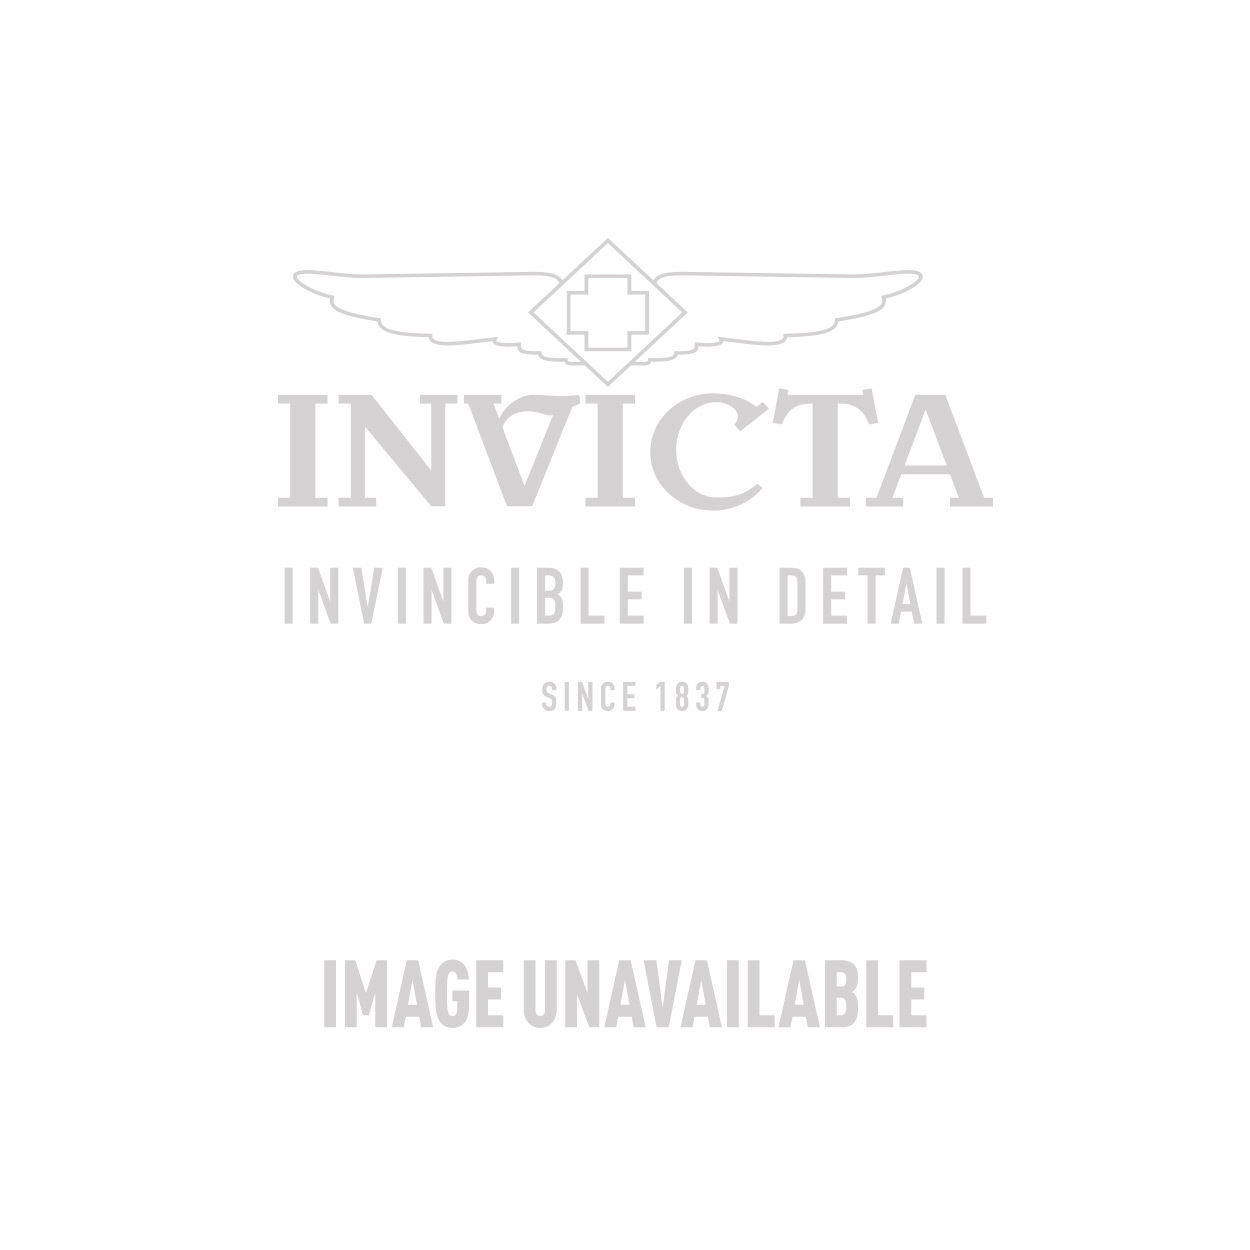 Invicta Excursion Swiss Made Quartz Watch - Gold case with Gold tone Stainless Steel band - Model 17470